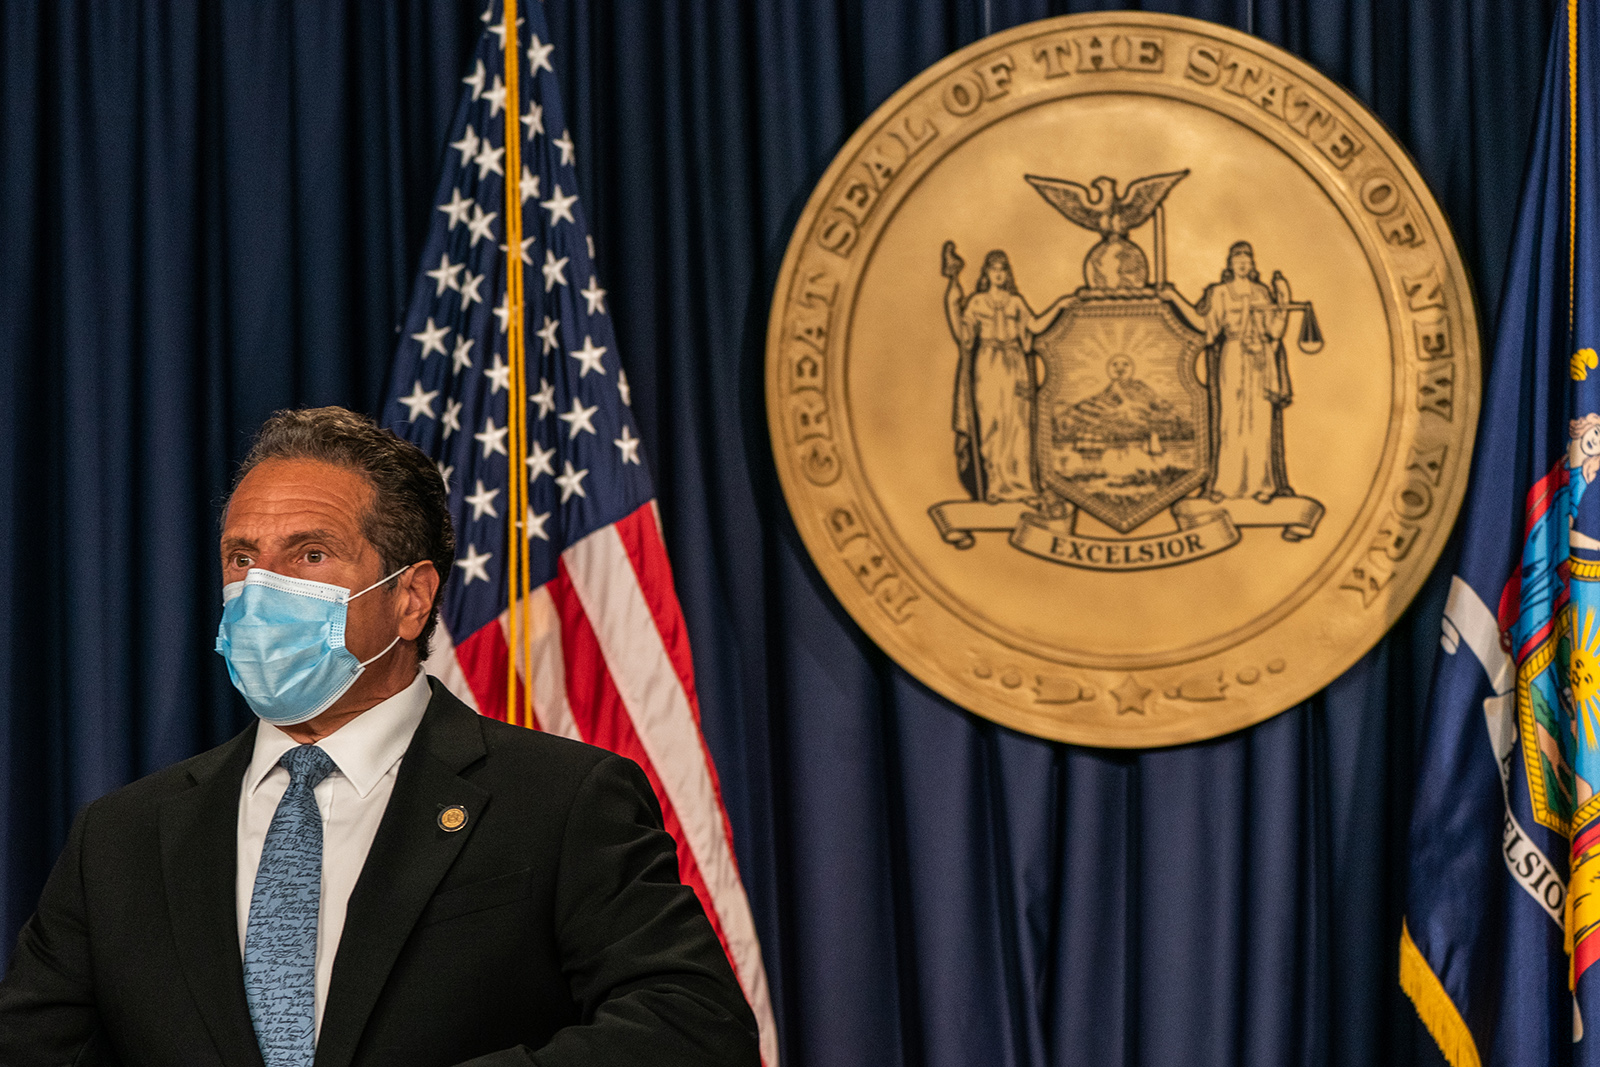 New York Gov. Andrew Cuomo wearing a protective mask attends during the daily media briefing at the Office of the Governor of the State of New York on July 23 in New York City.